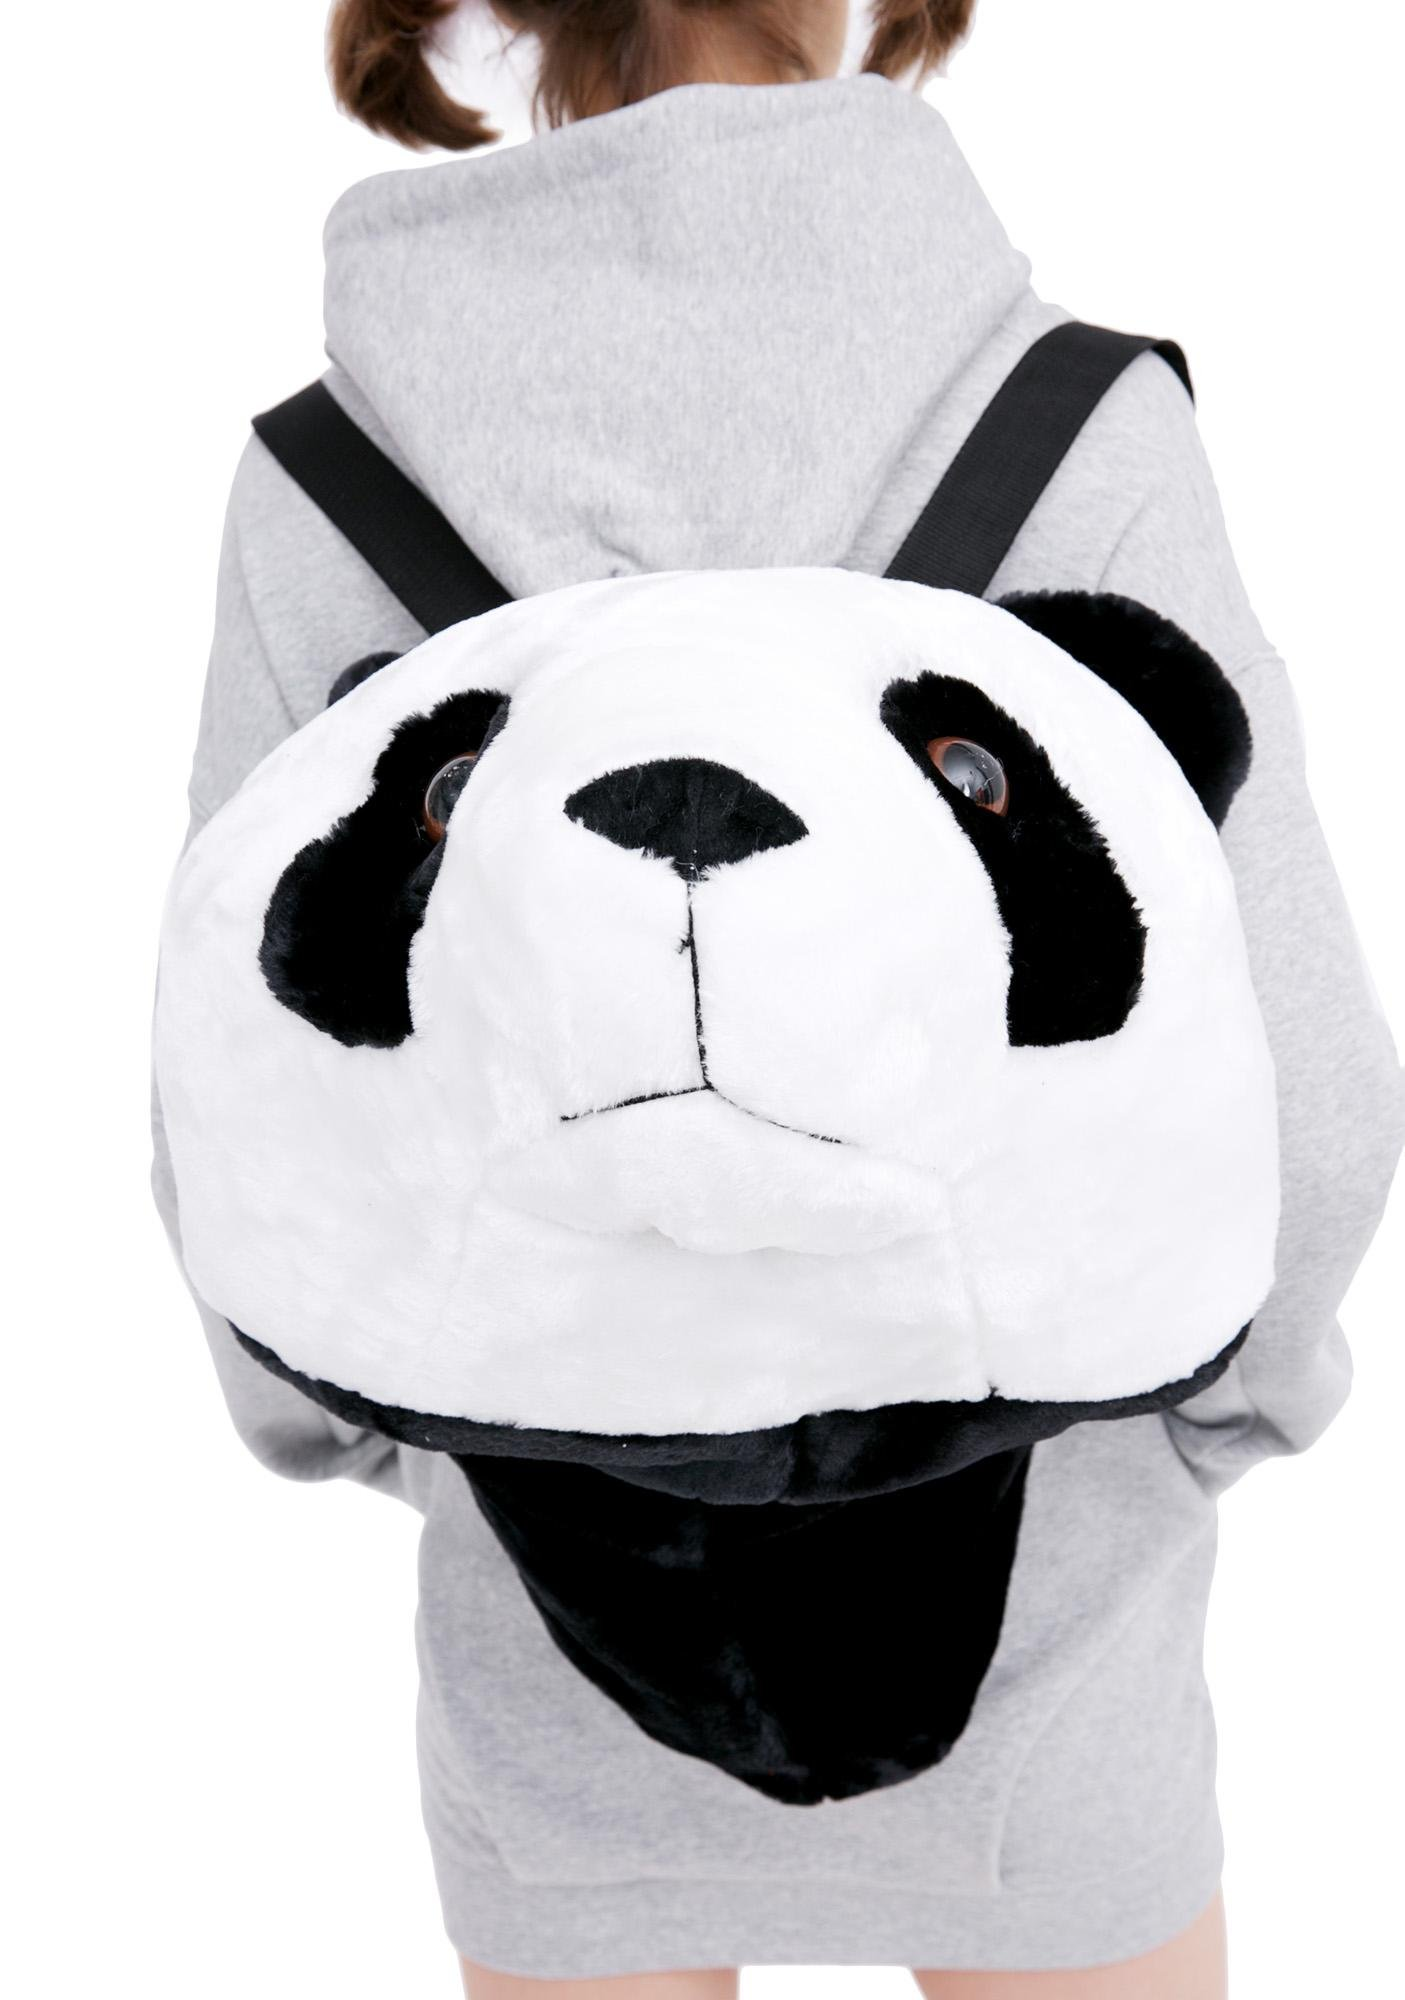 Super Sized Plush Panda Head Backpack